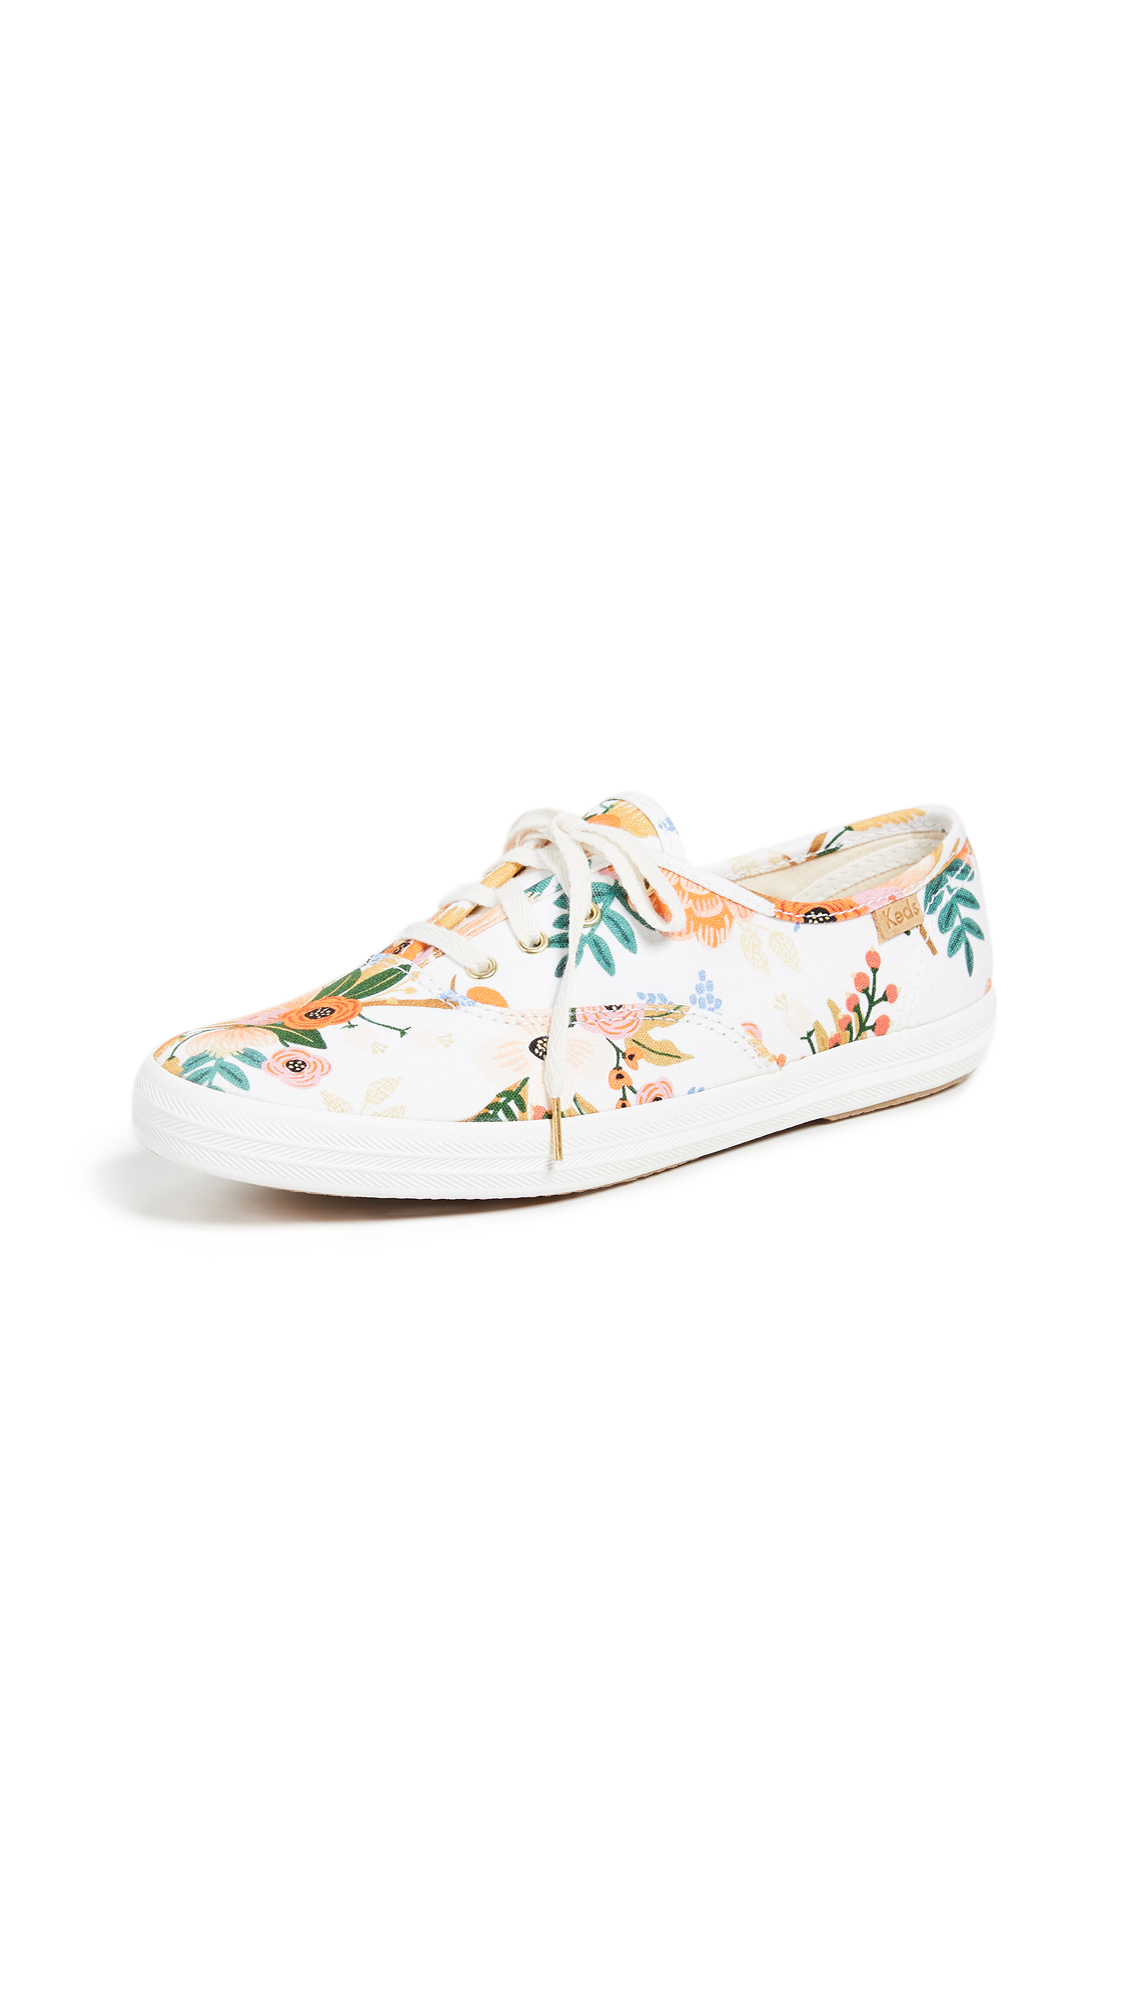 Keds x Rifle Paper CO Sneakers - White